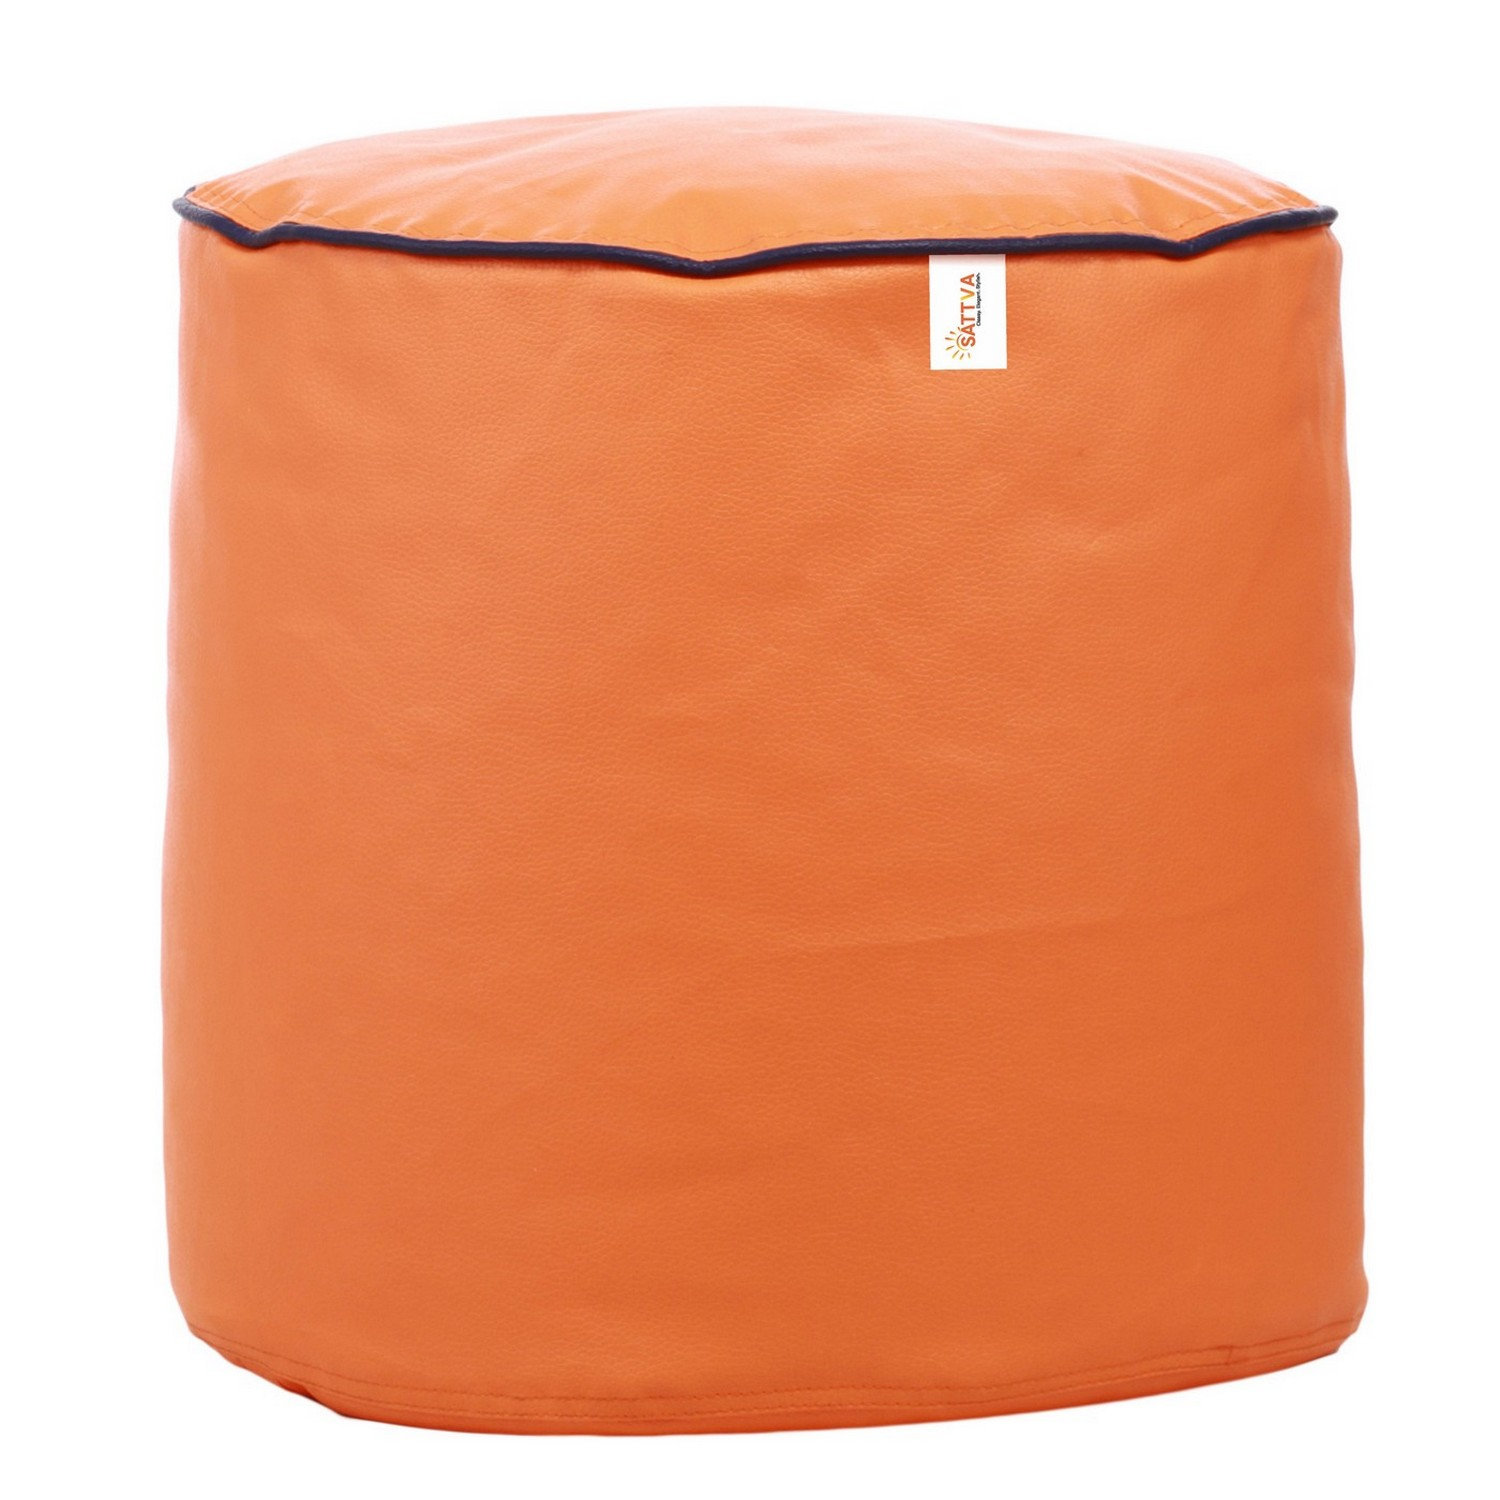 Sattva Combo Classic Bean Bag And Round Foostool-(Filled) Black With Pink Piping - XL (Orange Navy Blue Piping, XL)